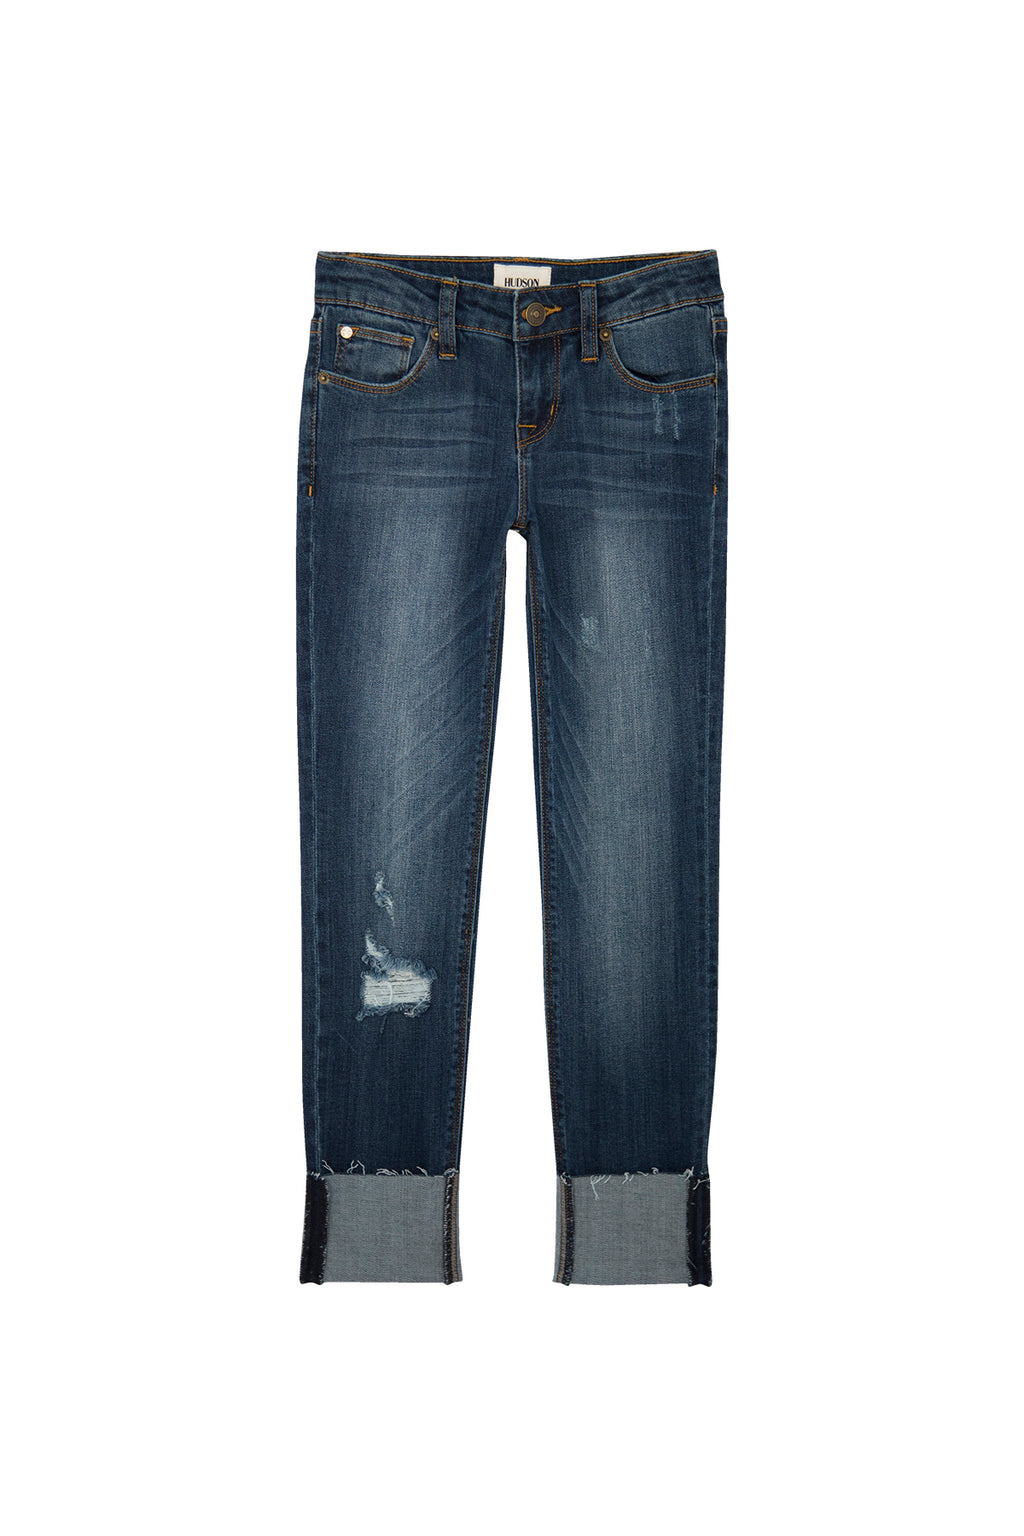 Big Girls Kaia Skinny Jean, Sizes 7-16 - hudsonjeans